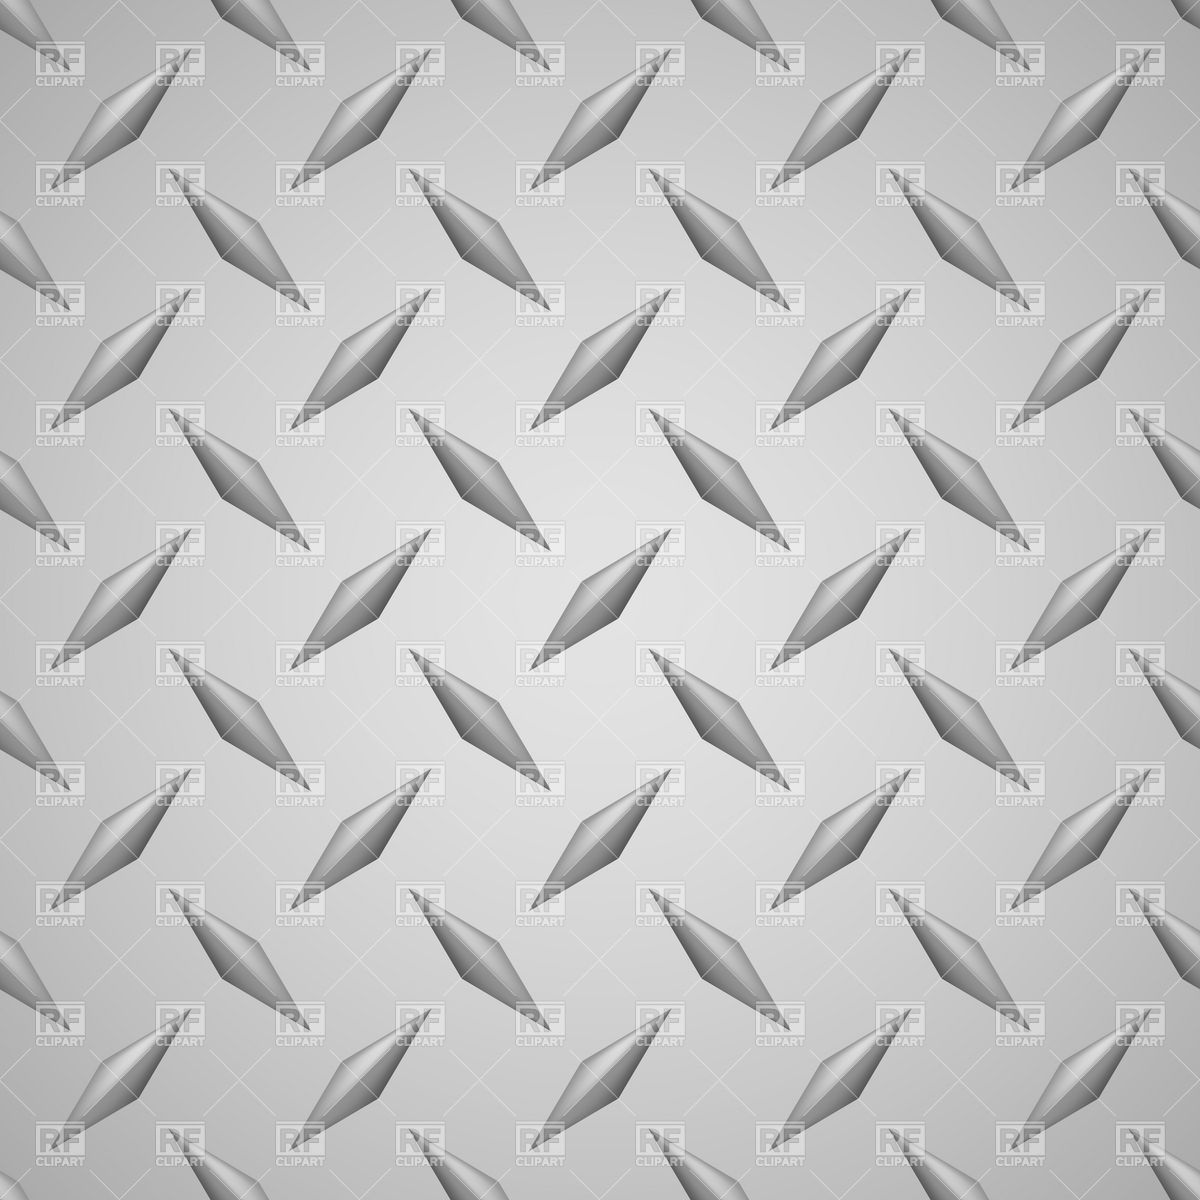 Sheet Metal Texture Seamless images.